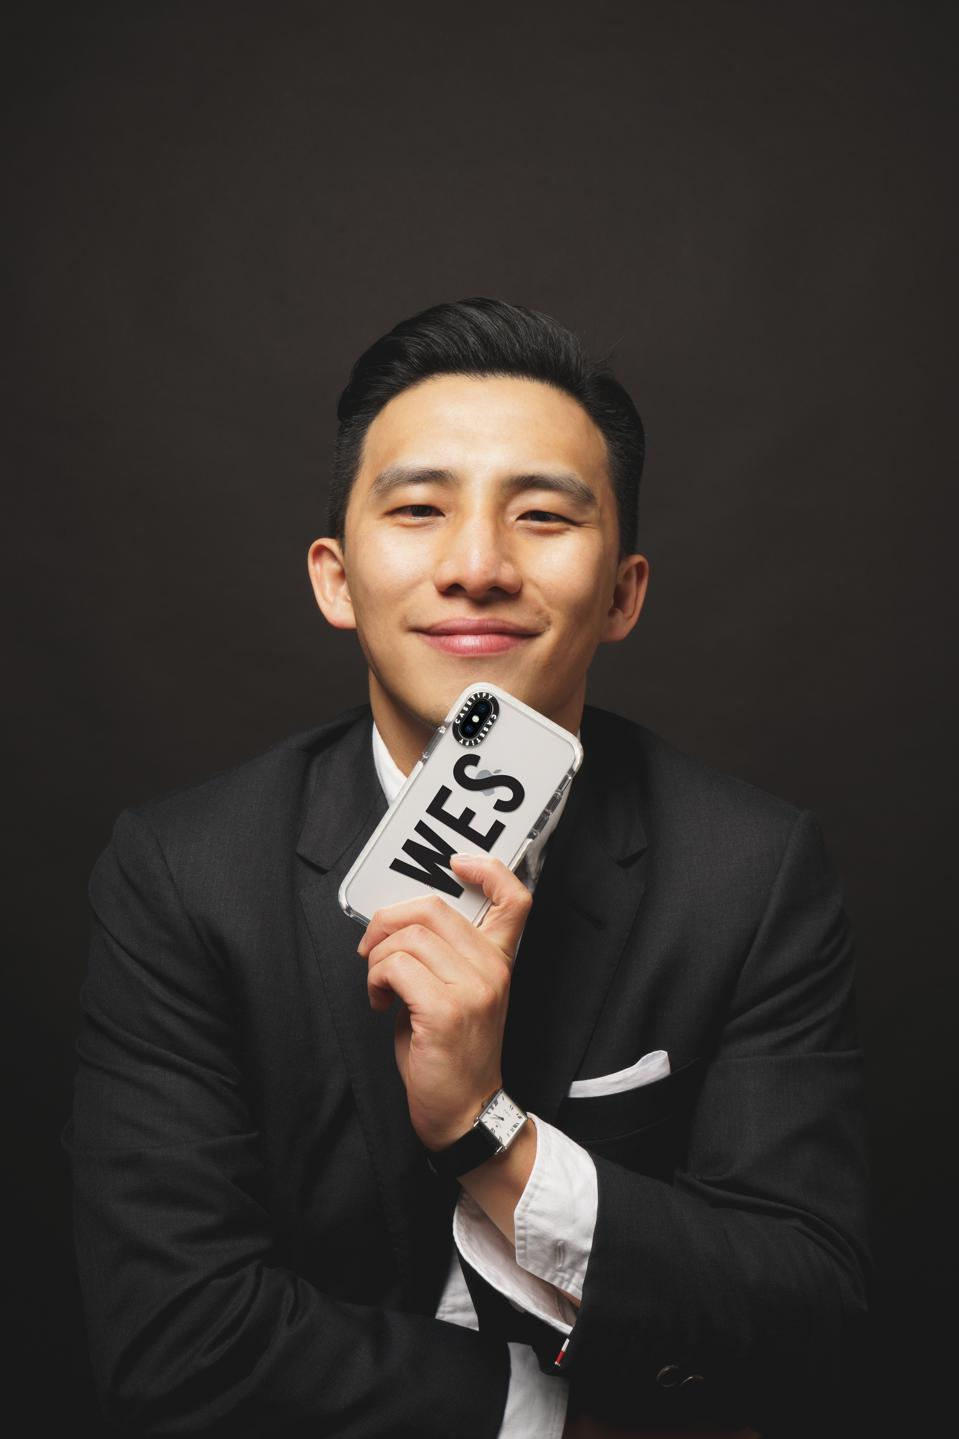 CEO and co-founder Wes Ng changed the phone case game forever